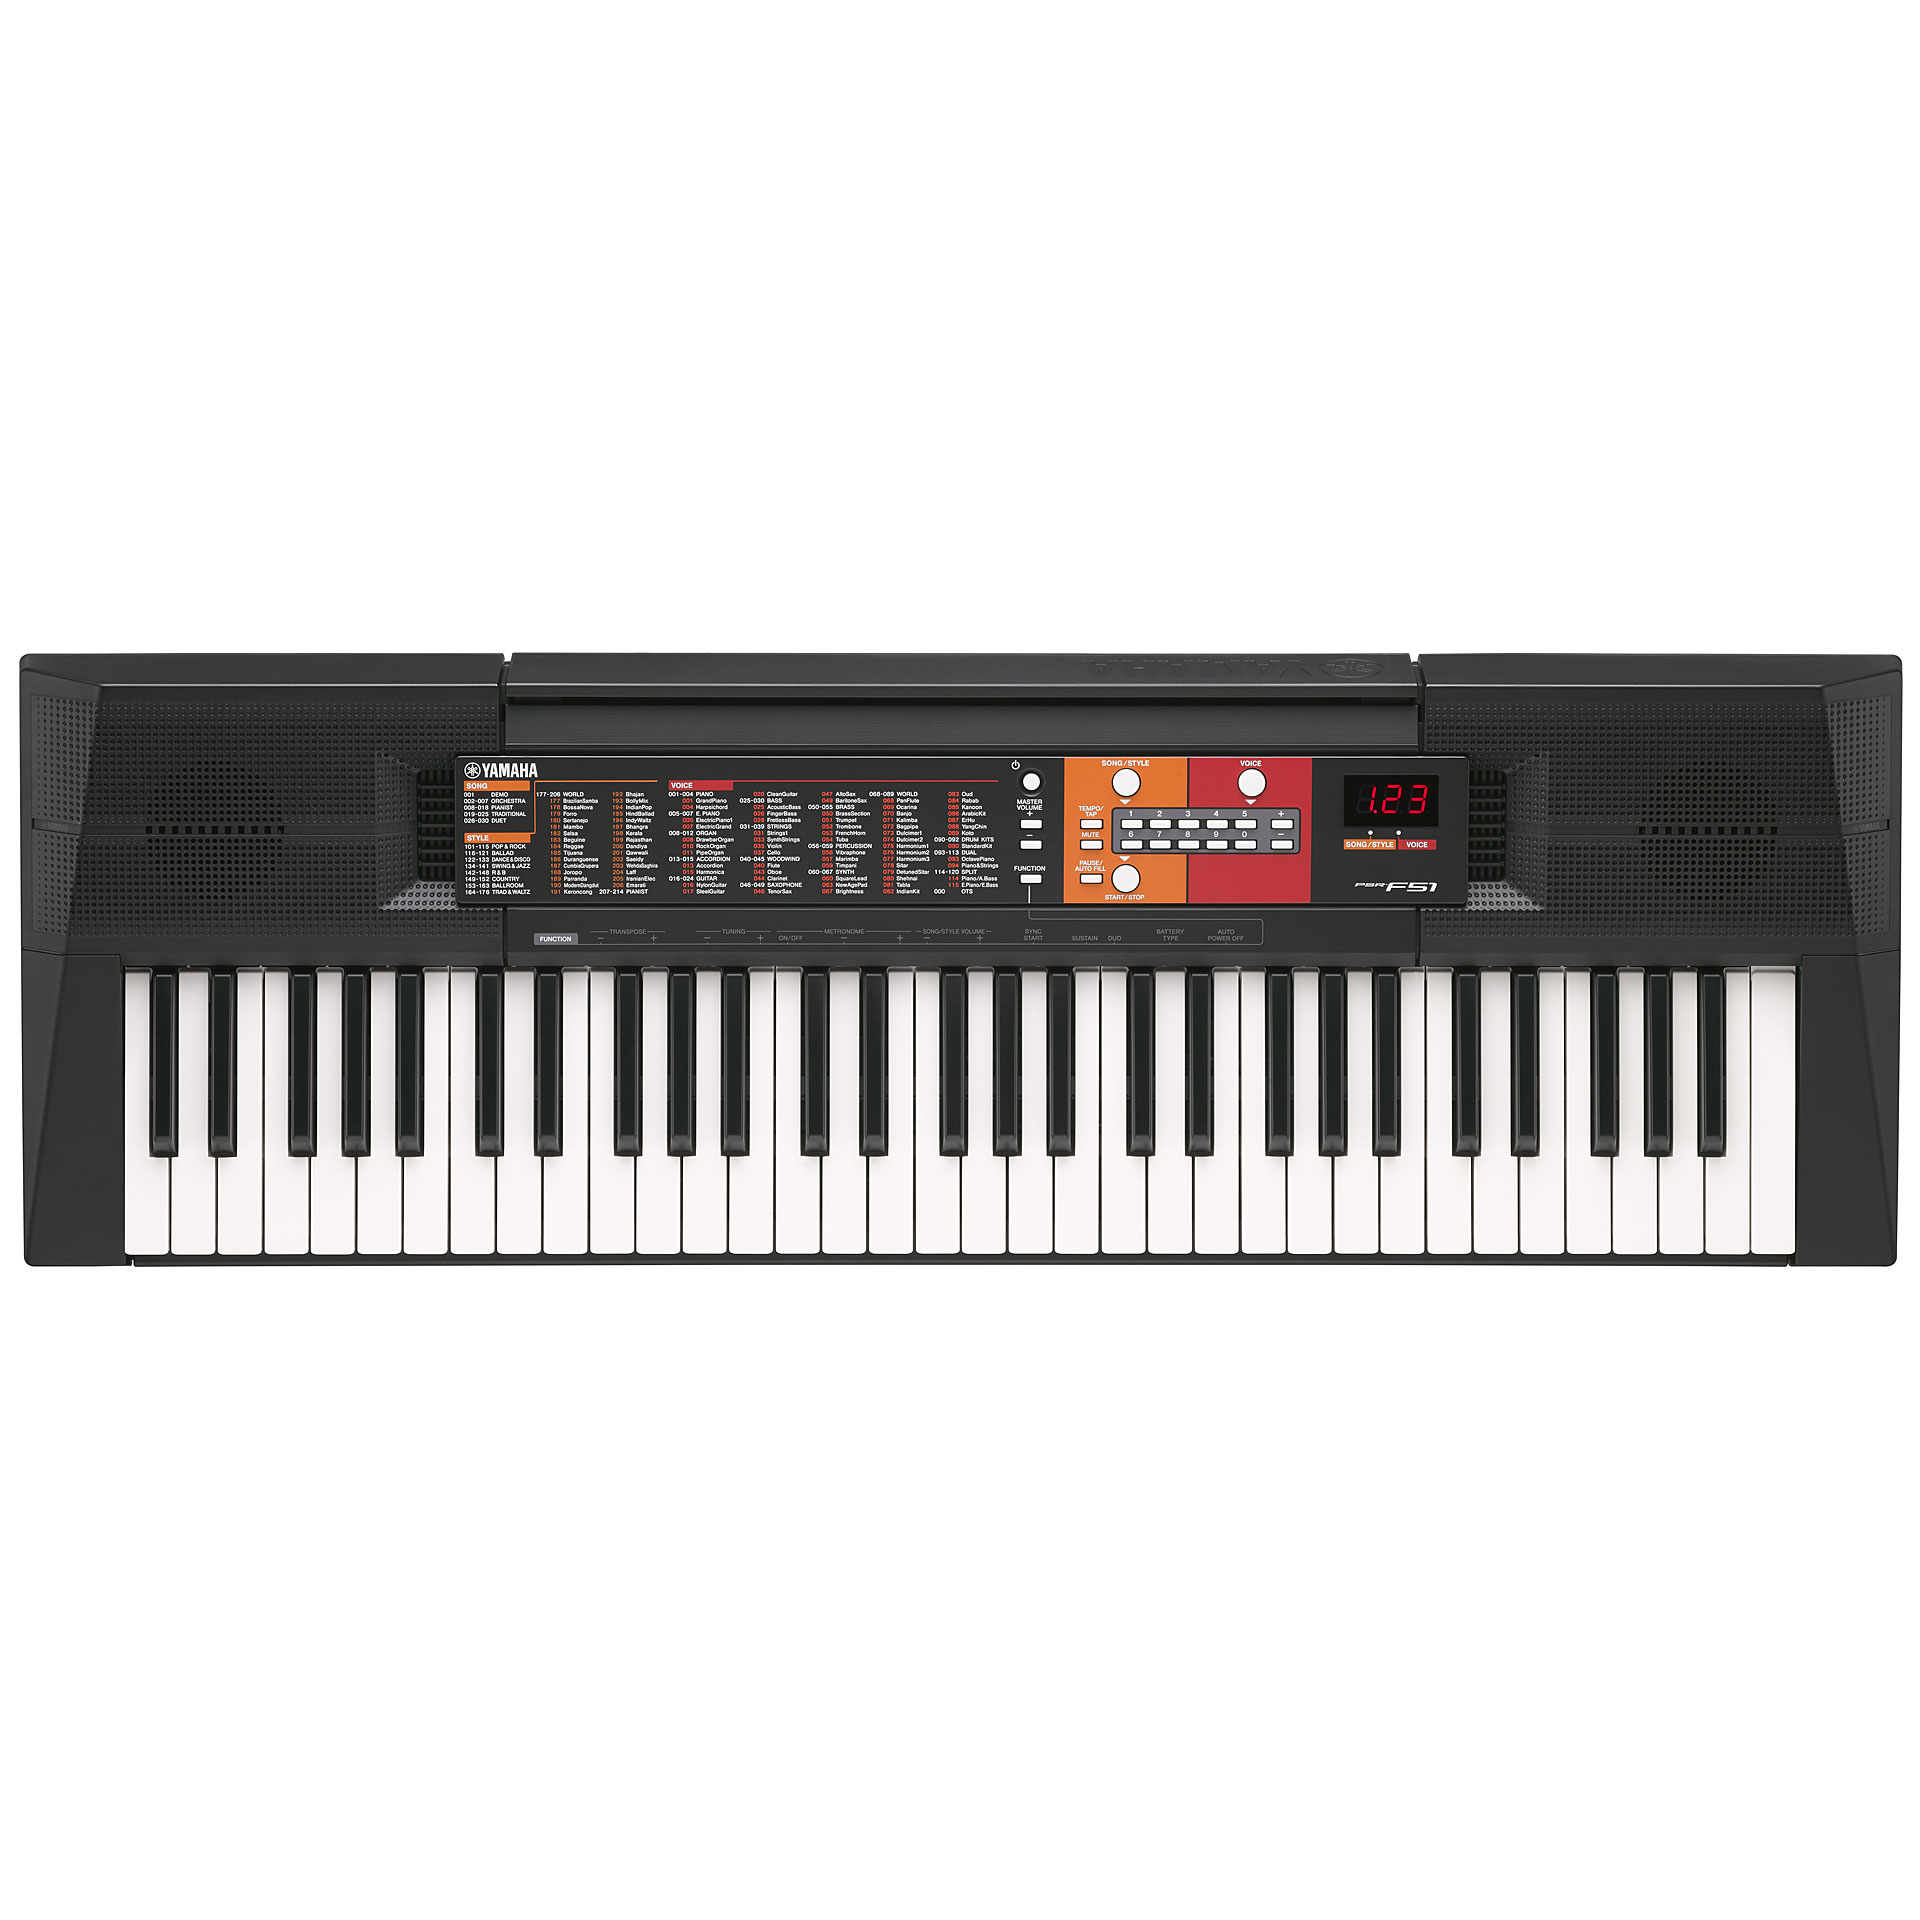 Instruction Manual for yamaha psr 220 keyboard S770